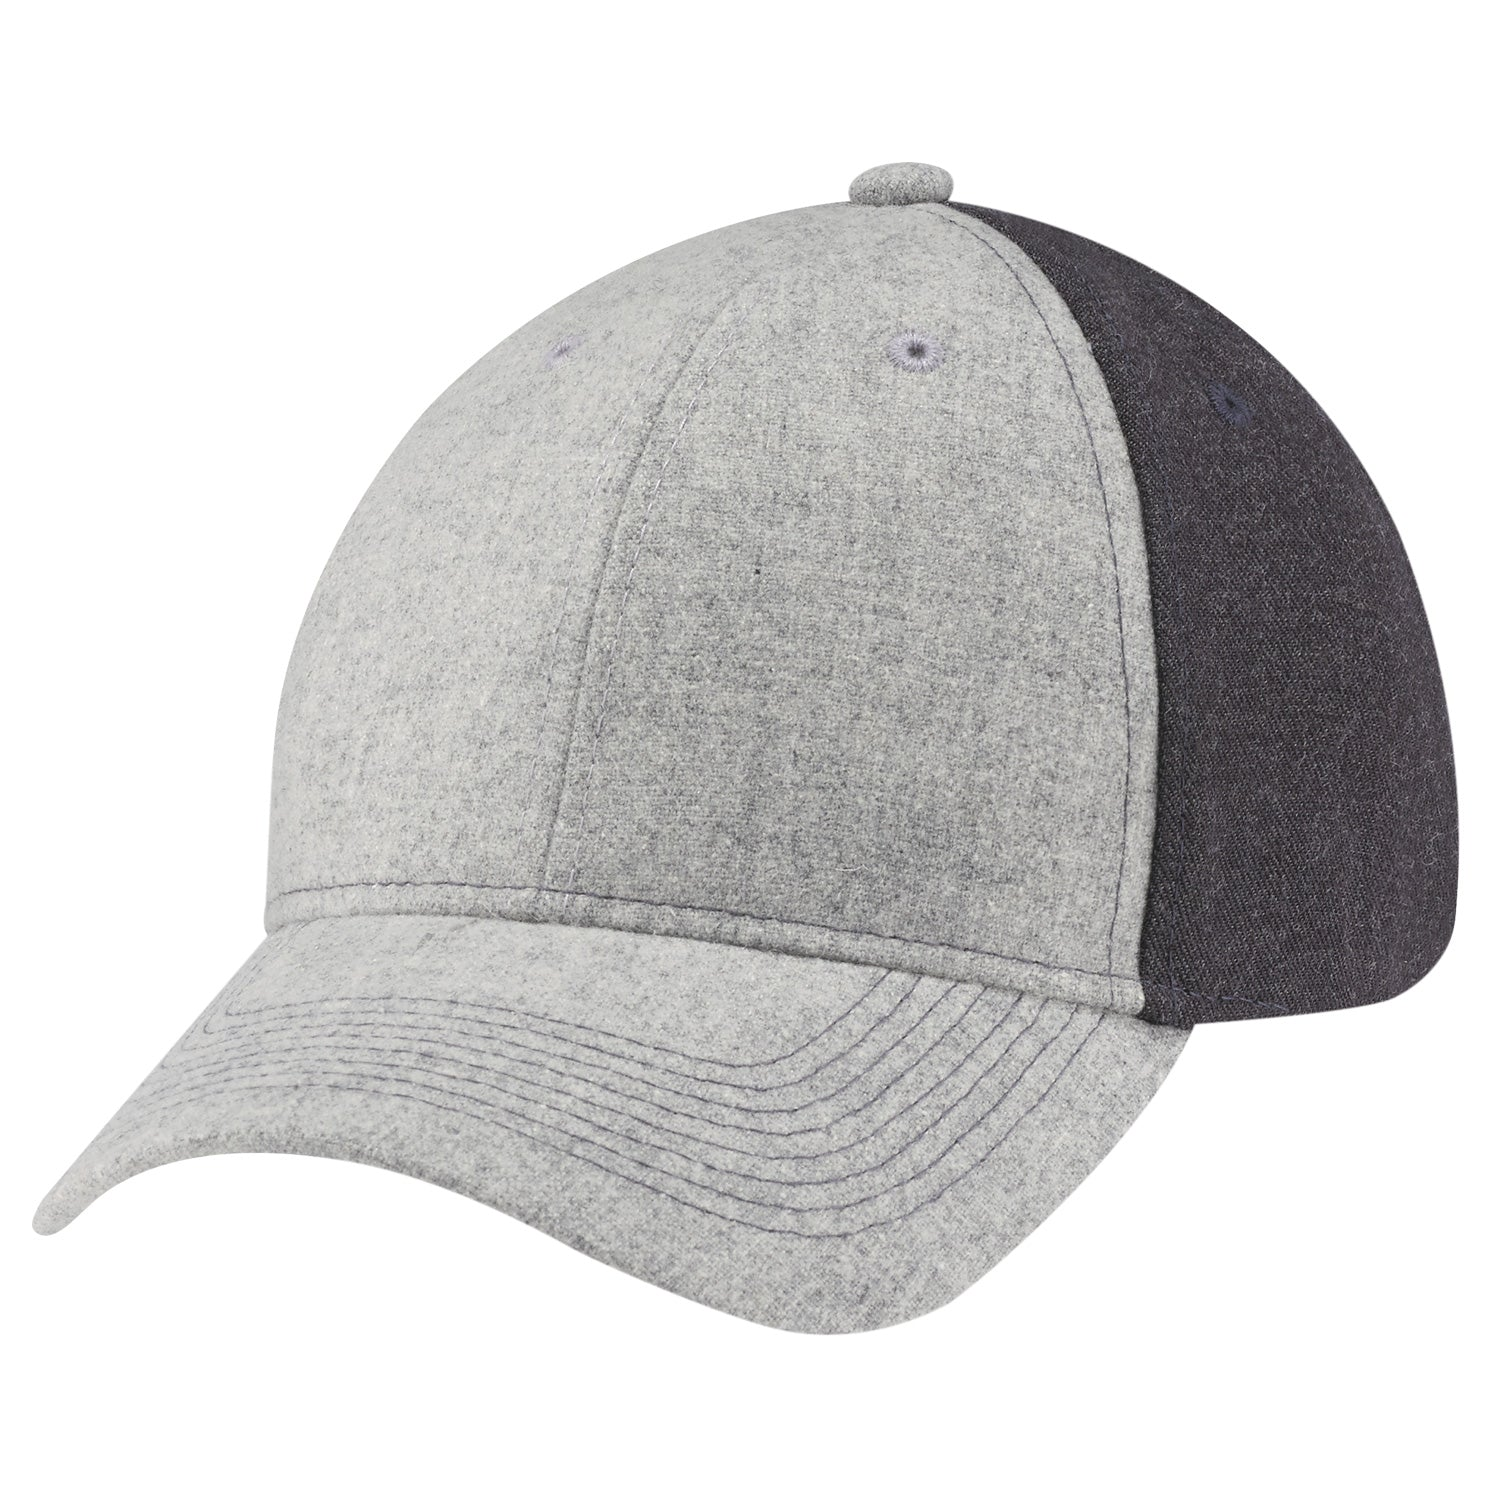 AJM WOOL SERGE HEATHER HAT